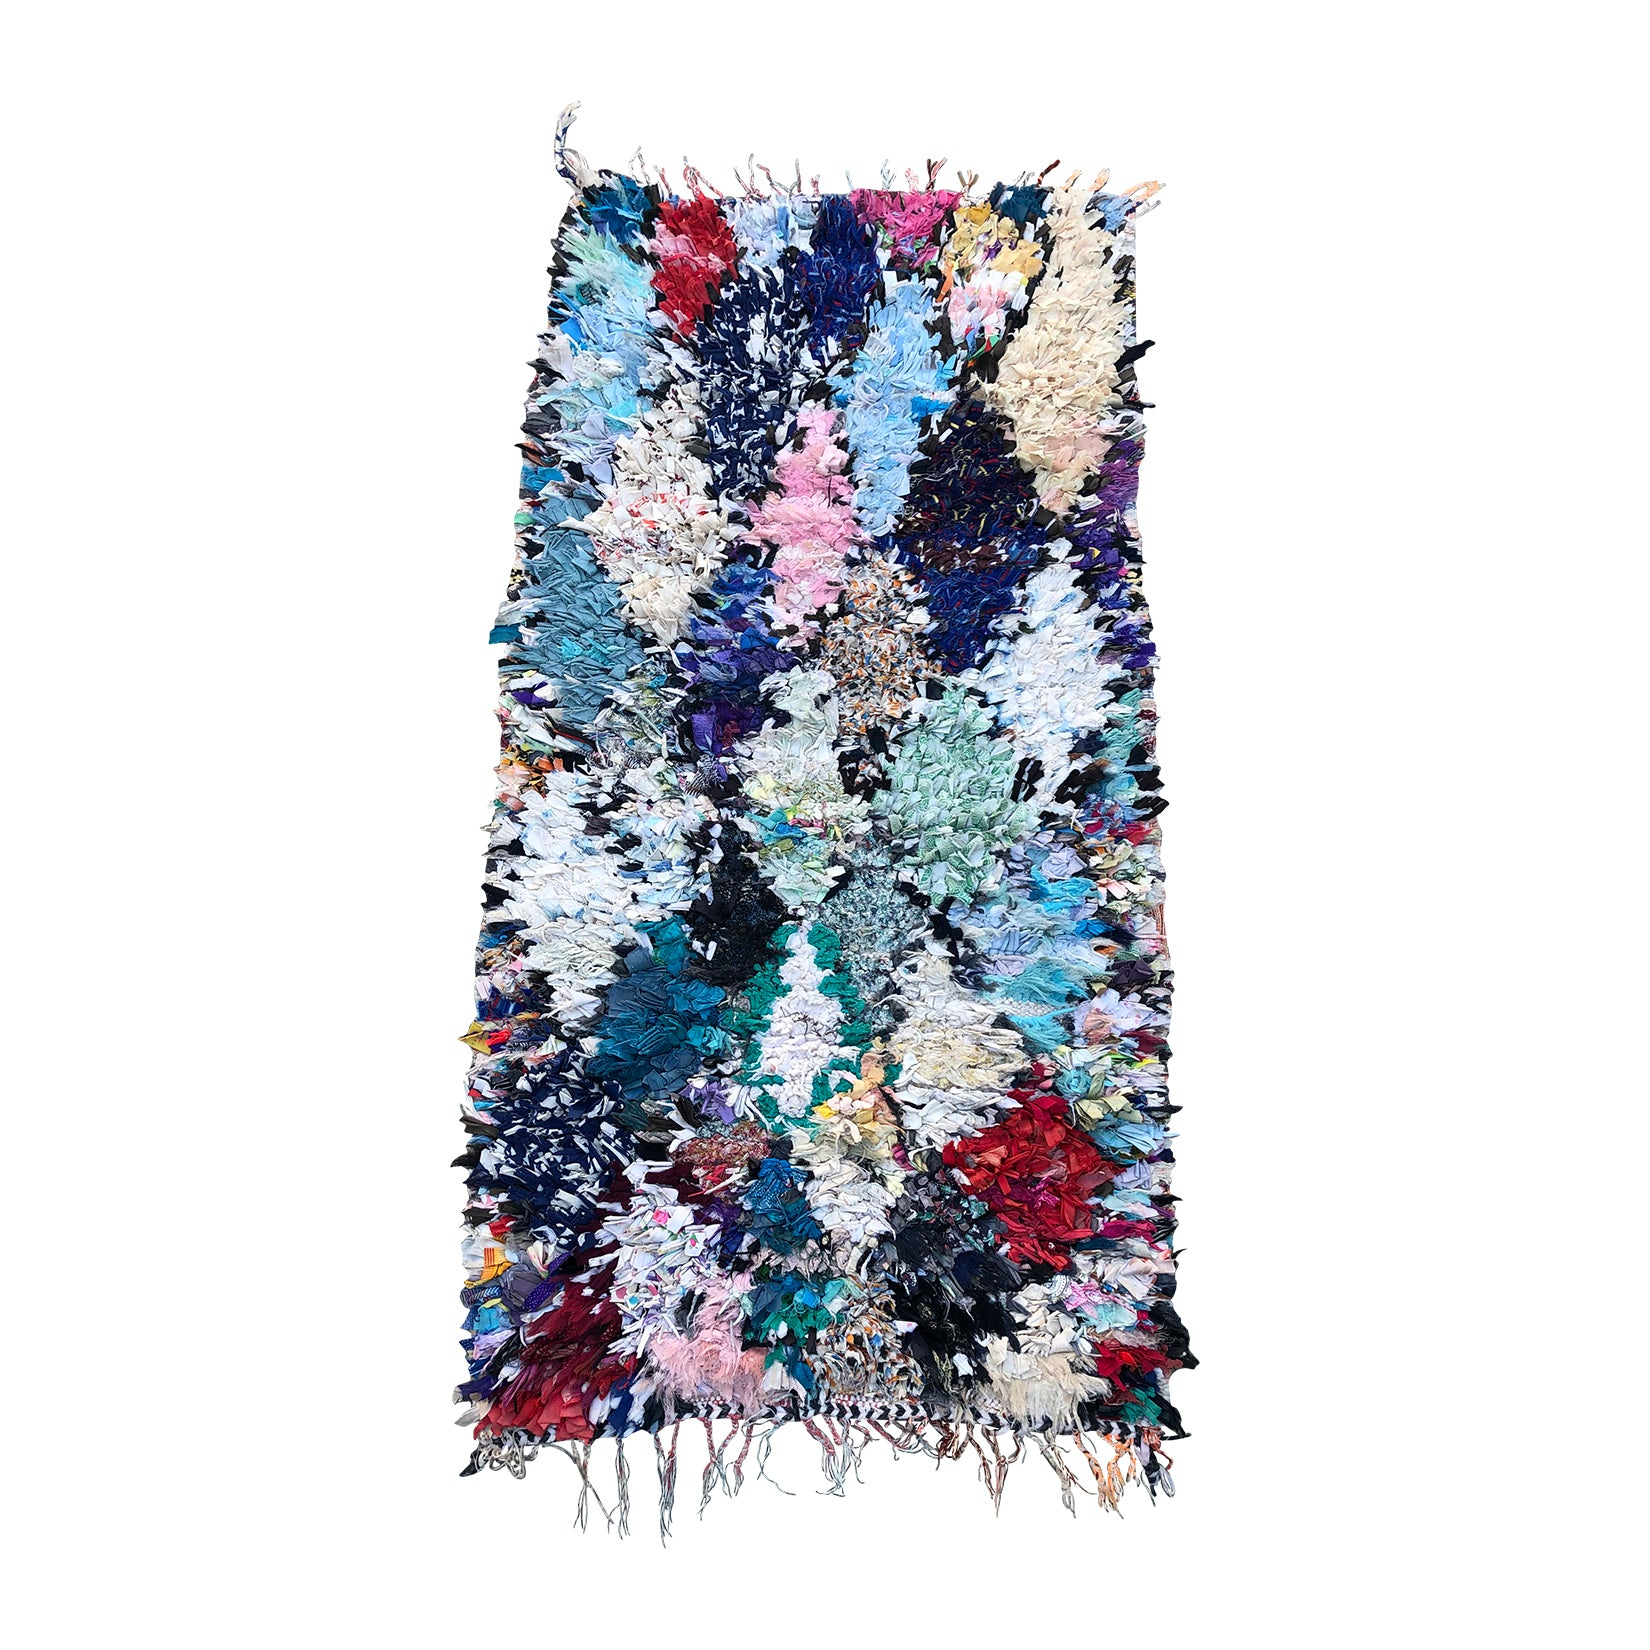 SALMA - Small boucherouite throw rug in fresh shades of blue and pink